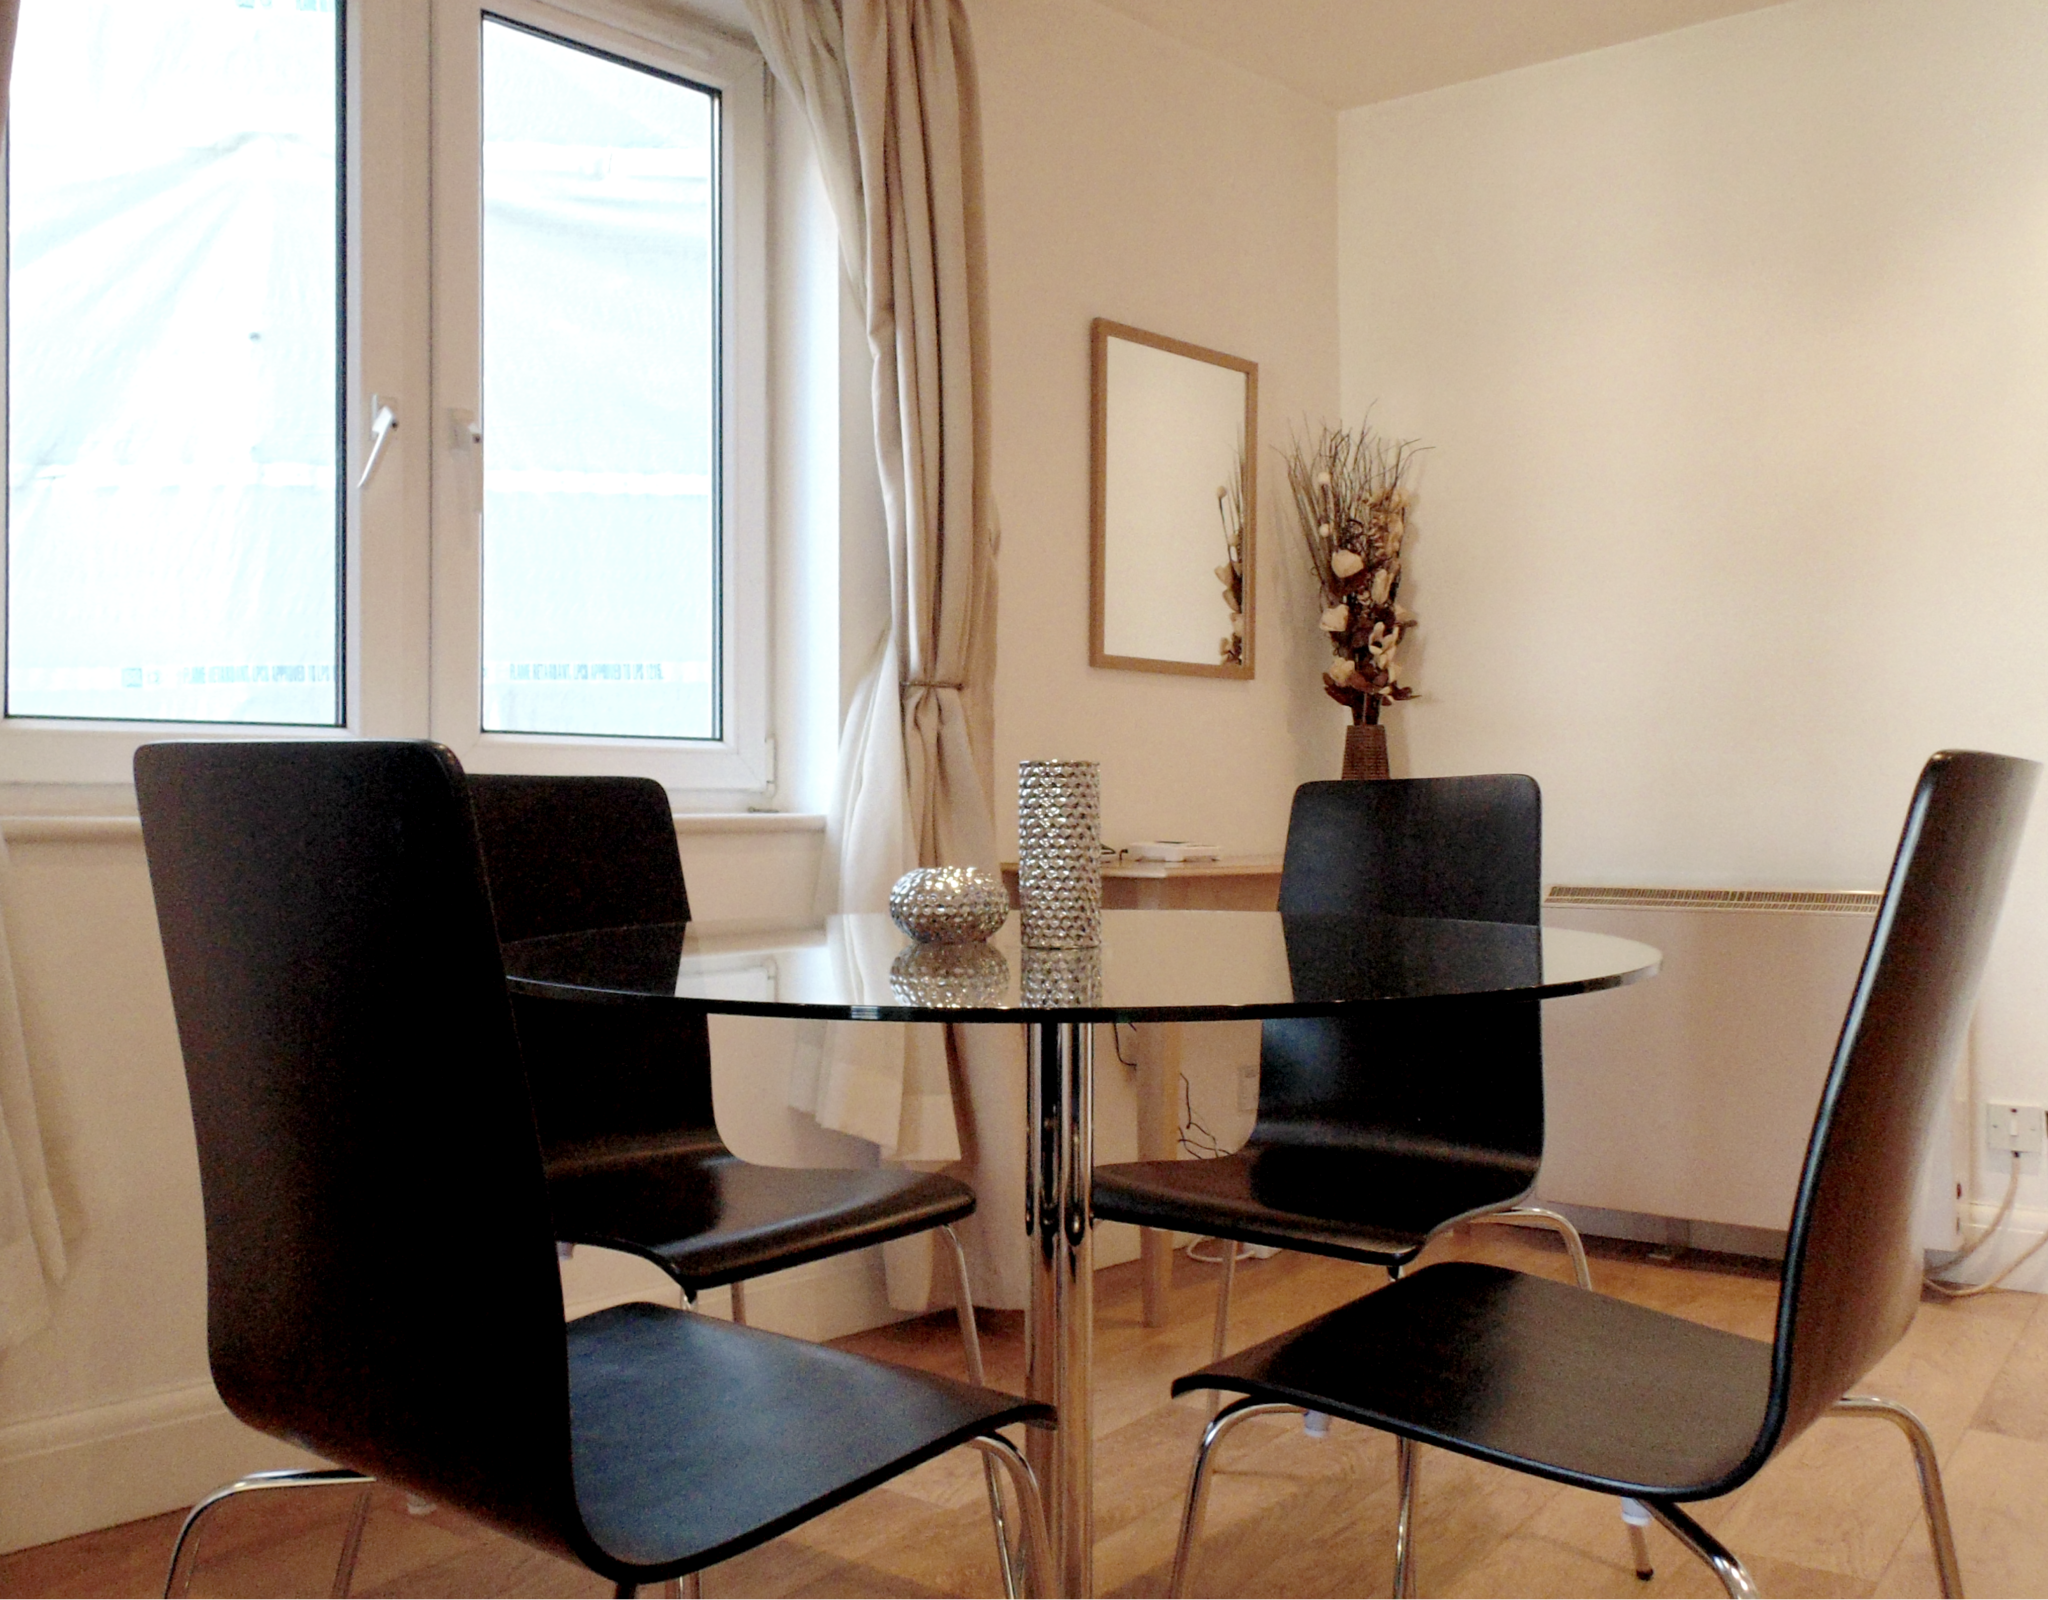 St-Paul's-Apartments---London-Short-Lets---Corporate-Accommodation-Barbican-Farringdon-|-Urban-Stay-Serviced-Apartments-London